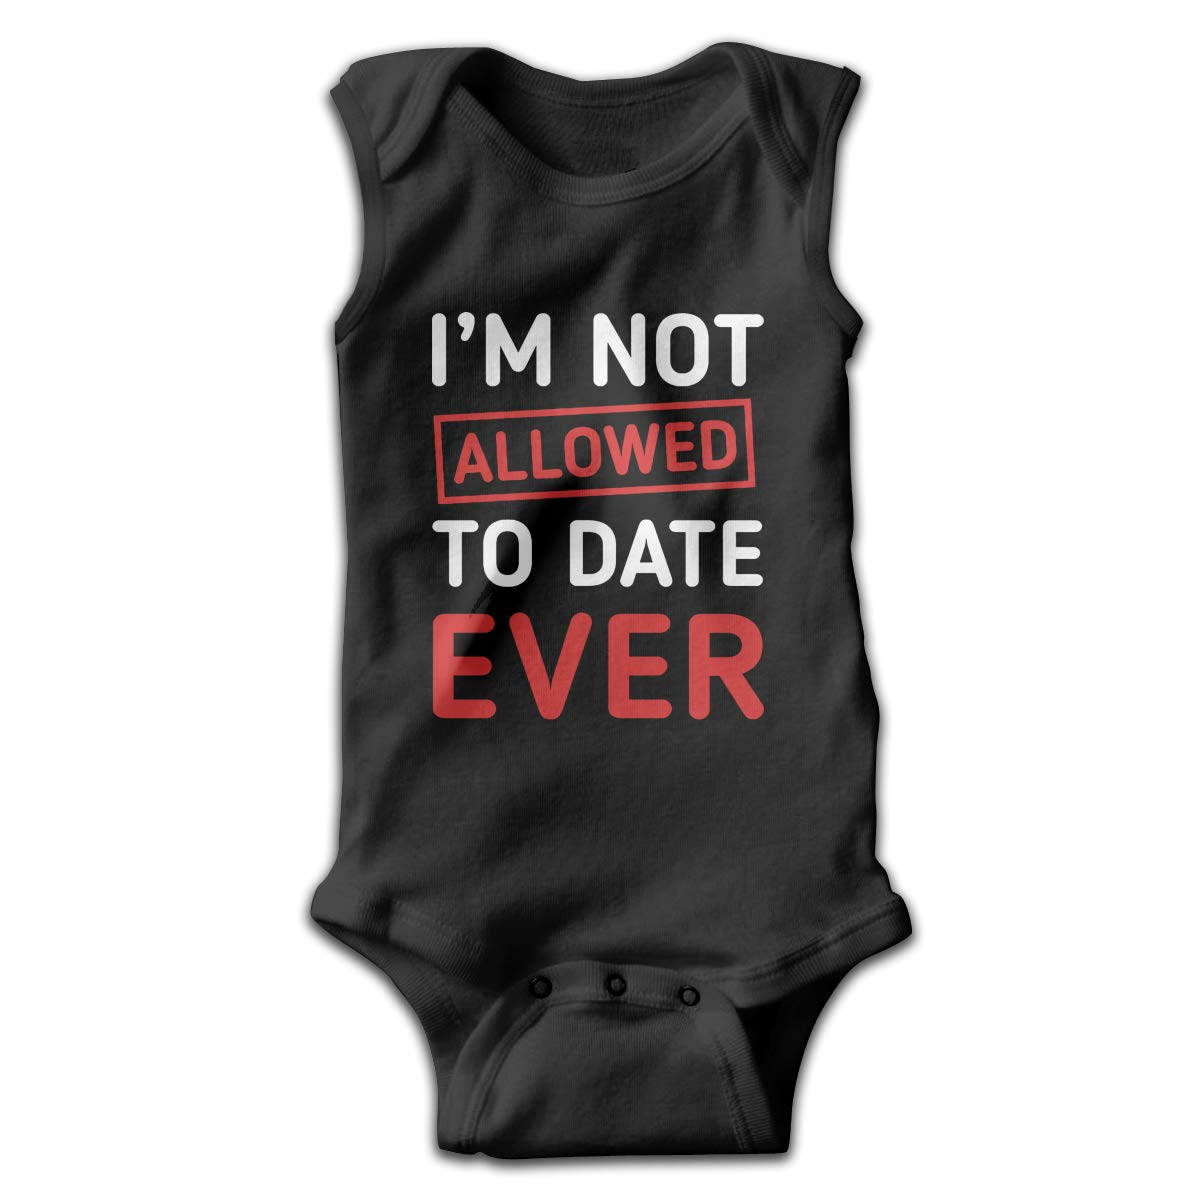 Im NOT Allowed to Date Infant Baby Clothes Layette Sleeveless Summer Novelty Funny Gift for Baby